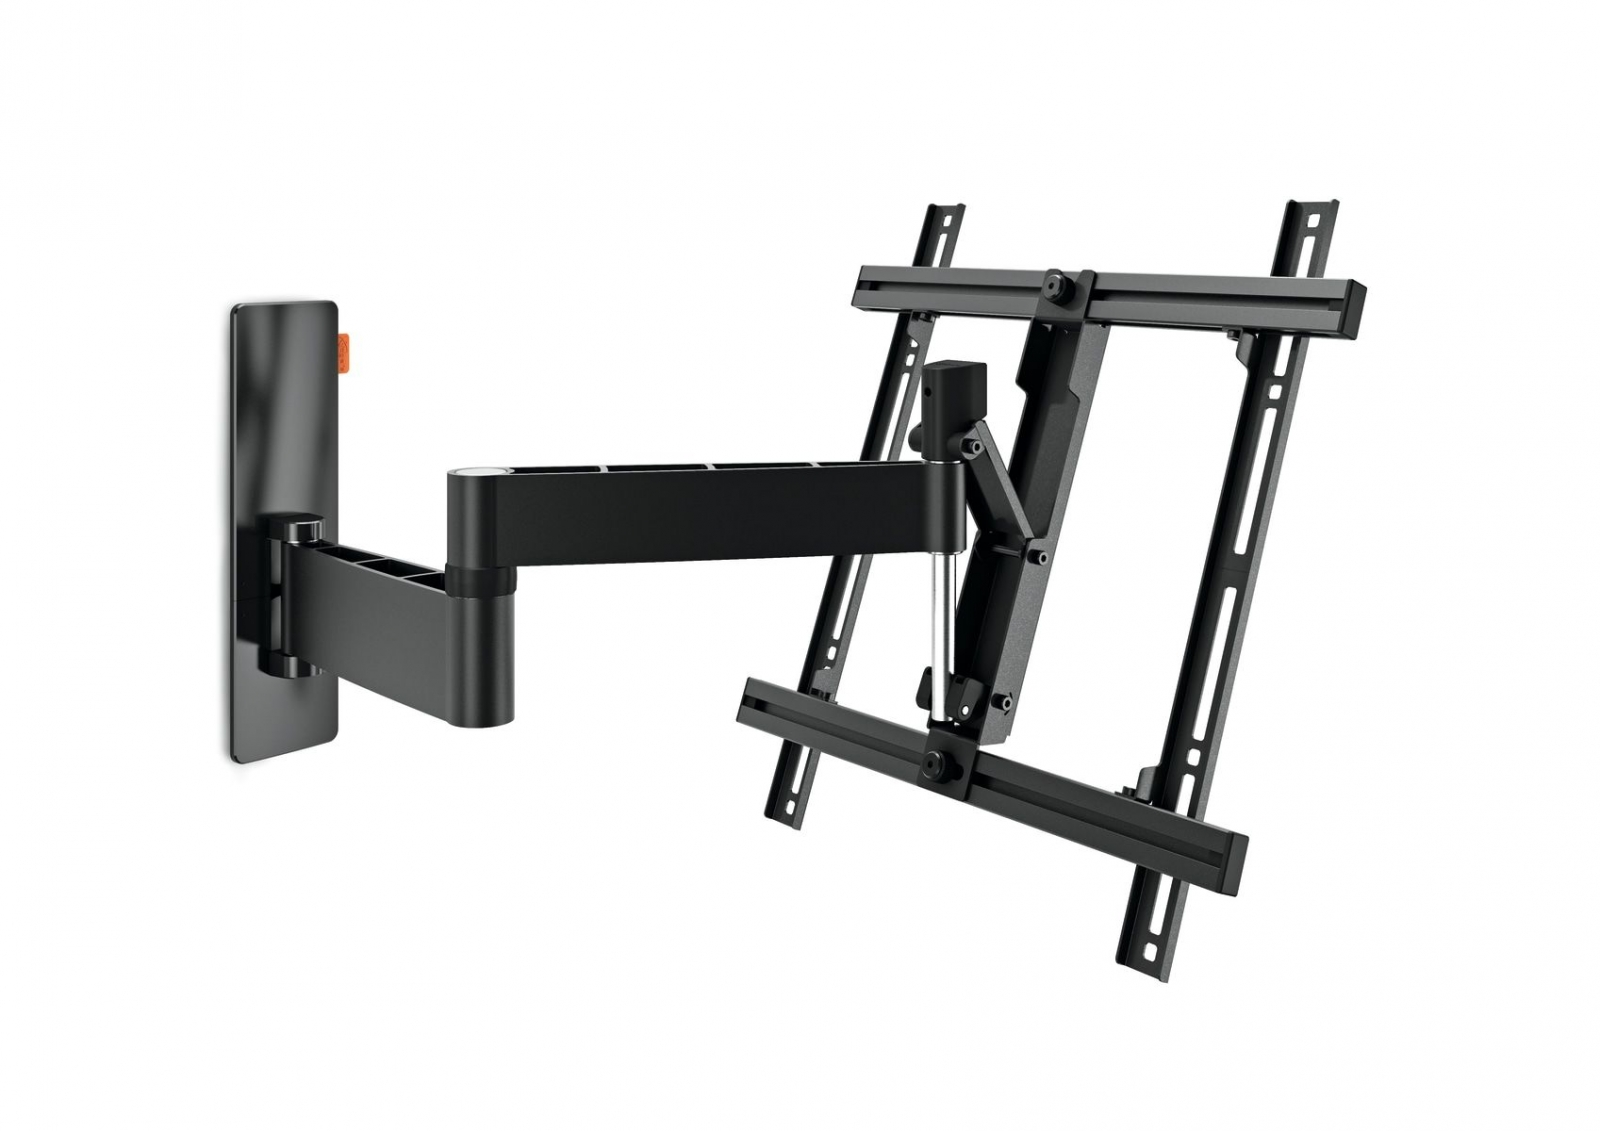 Vogels W53070 Wall Support 2 arms 32-55' Black